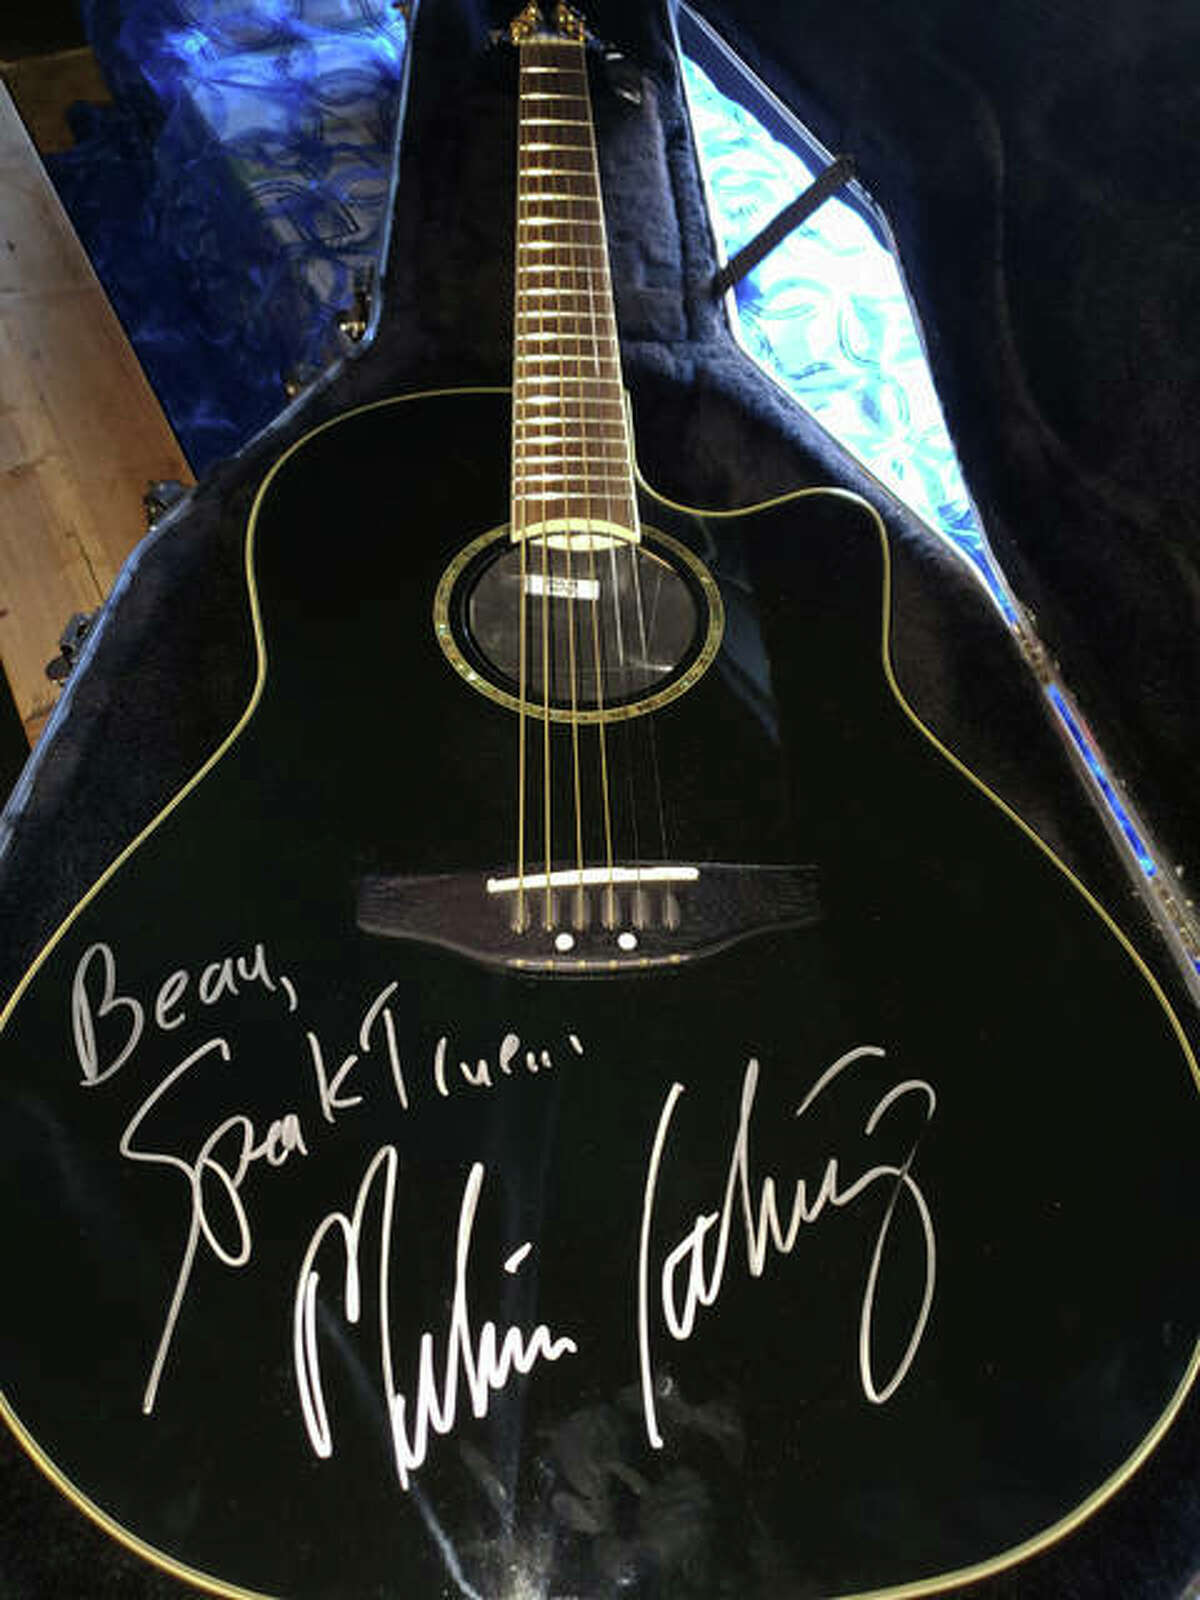 An electric guitar signed by Melissa Etheridge will be raffled off on Oct. 3 as part of the Alton Pride Fall Festival. Planning continues for the inaugural event scheduled at the Liberty Bank Amphitheater.